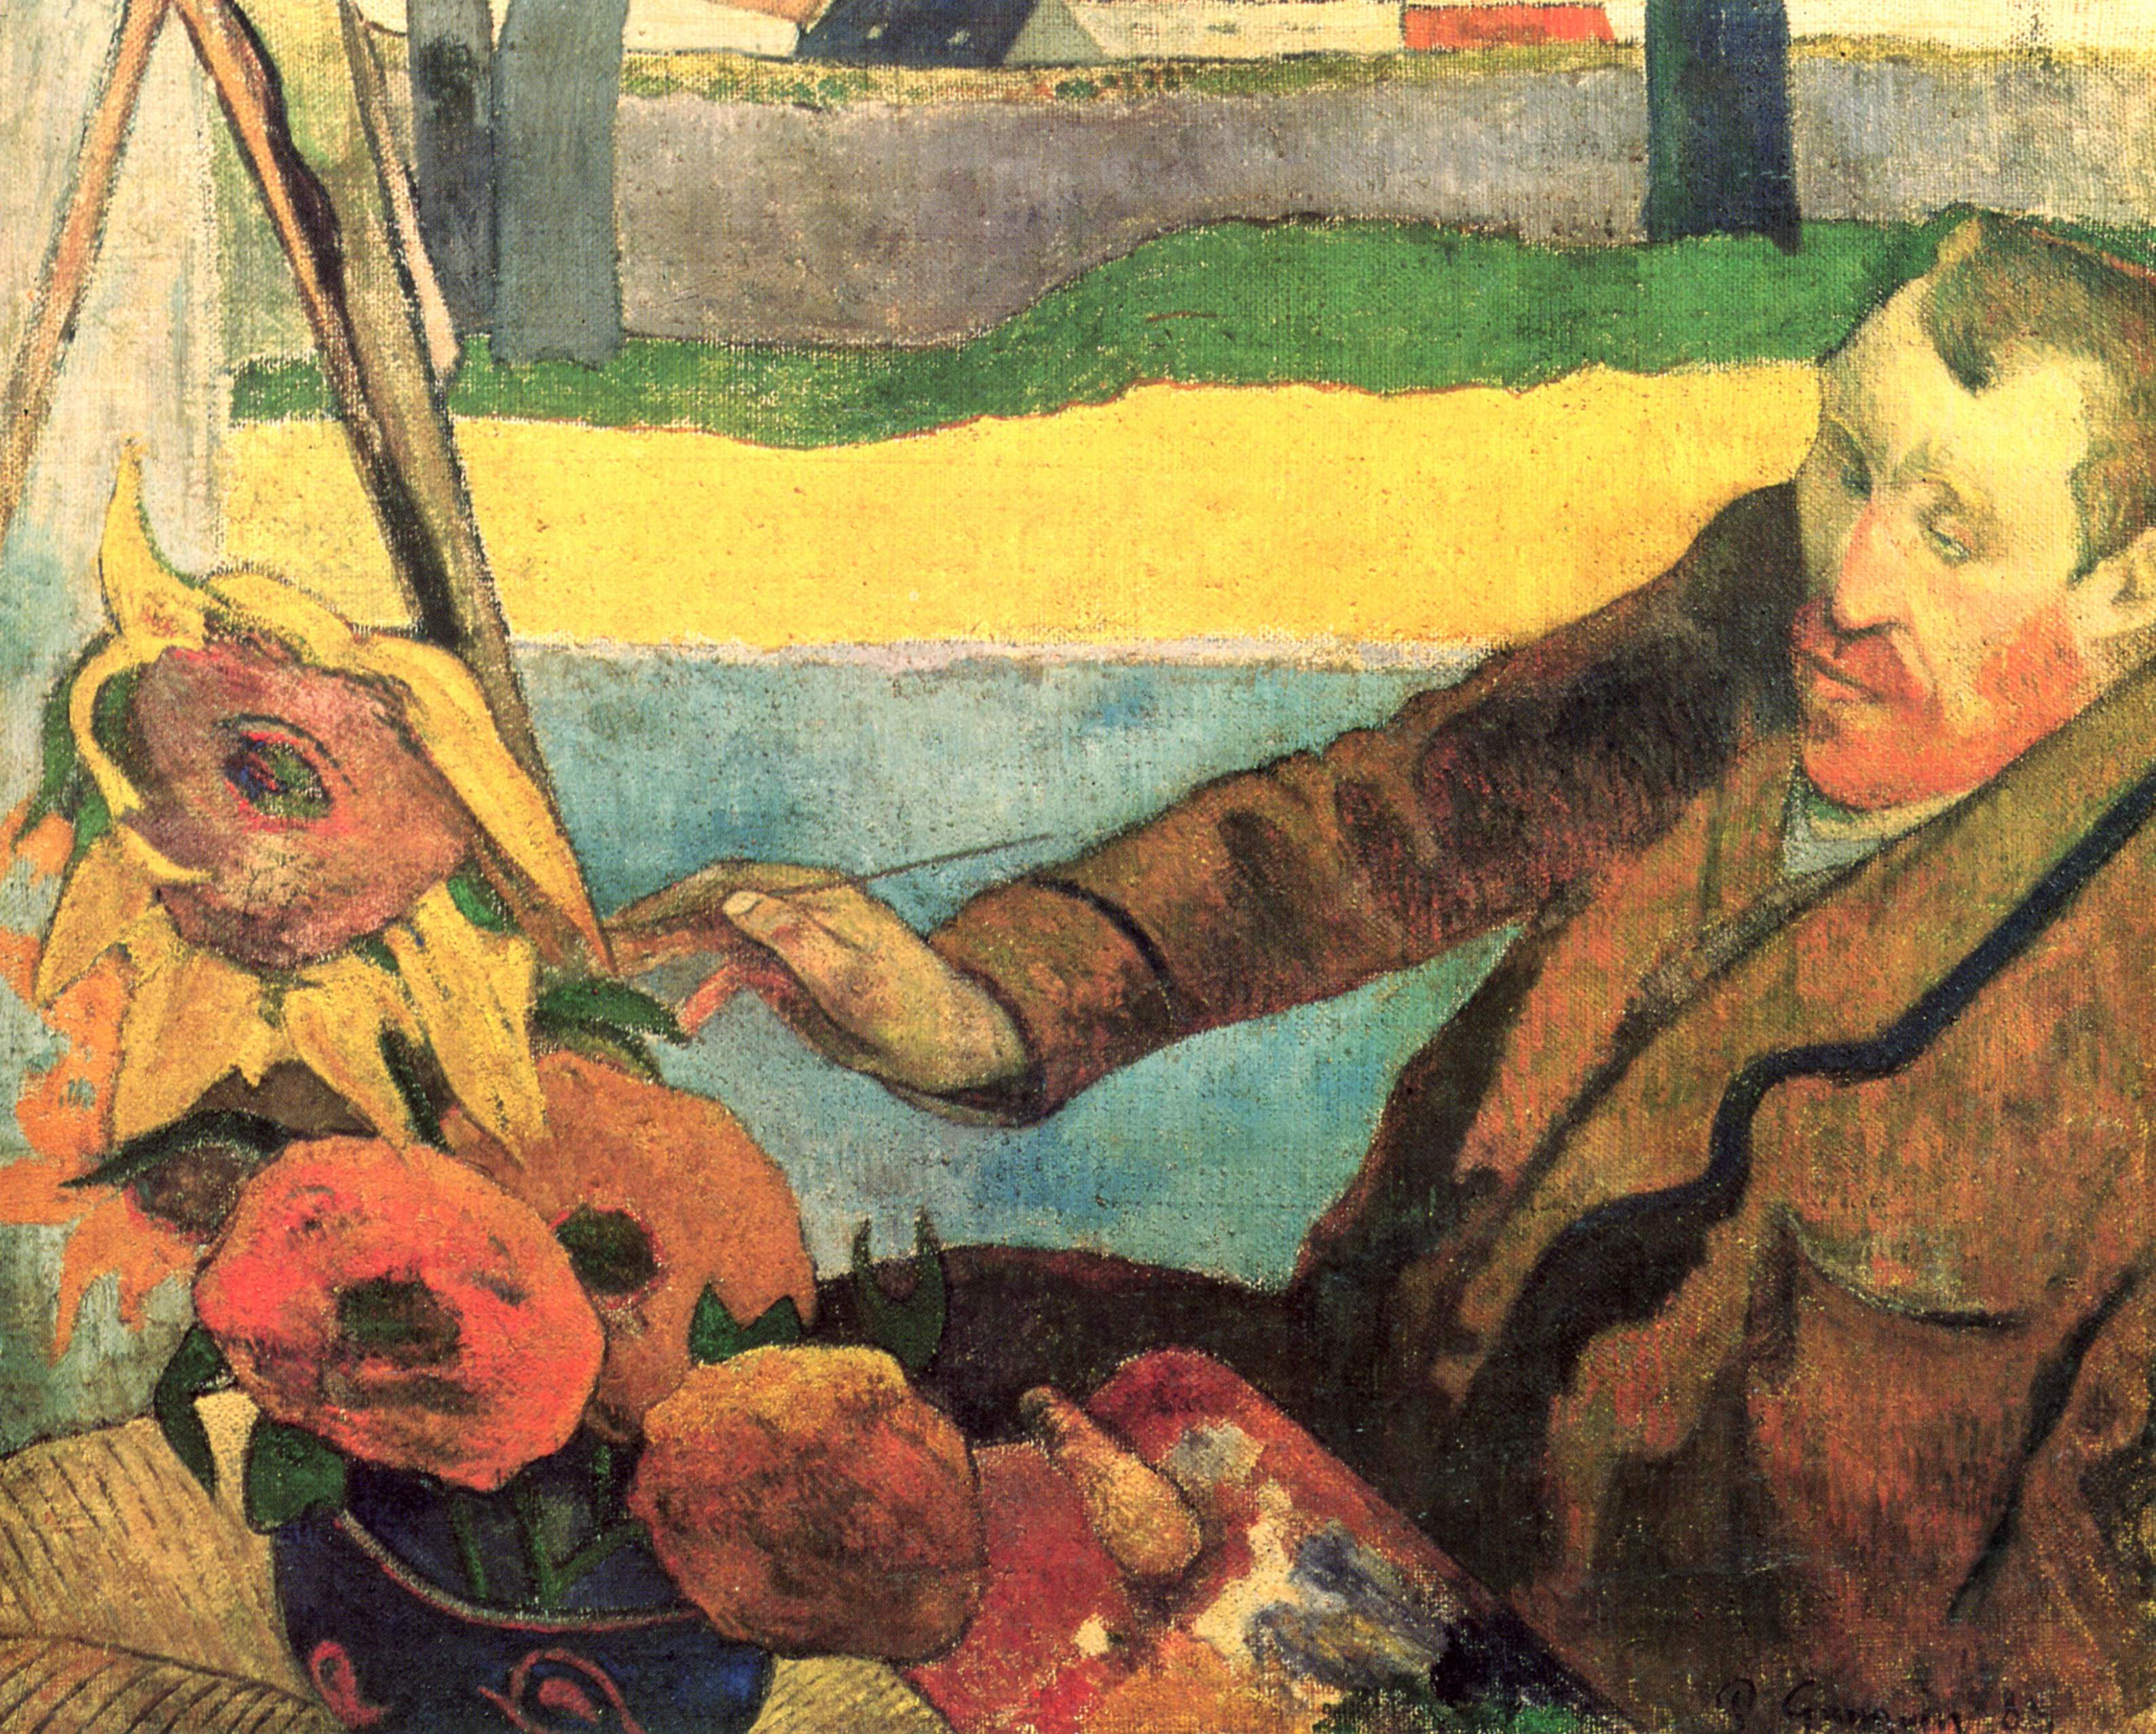 A Vase Of Flowers by Paul Gauguin Of His Timeline Vincent Throughout In An Absinthe Fueled State Of Instability and Believing that Gauguin is Deserting Him and His Studio Of the south Vincent Uses A Straight Razor to Slice